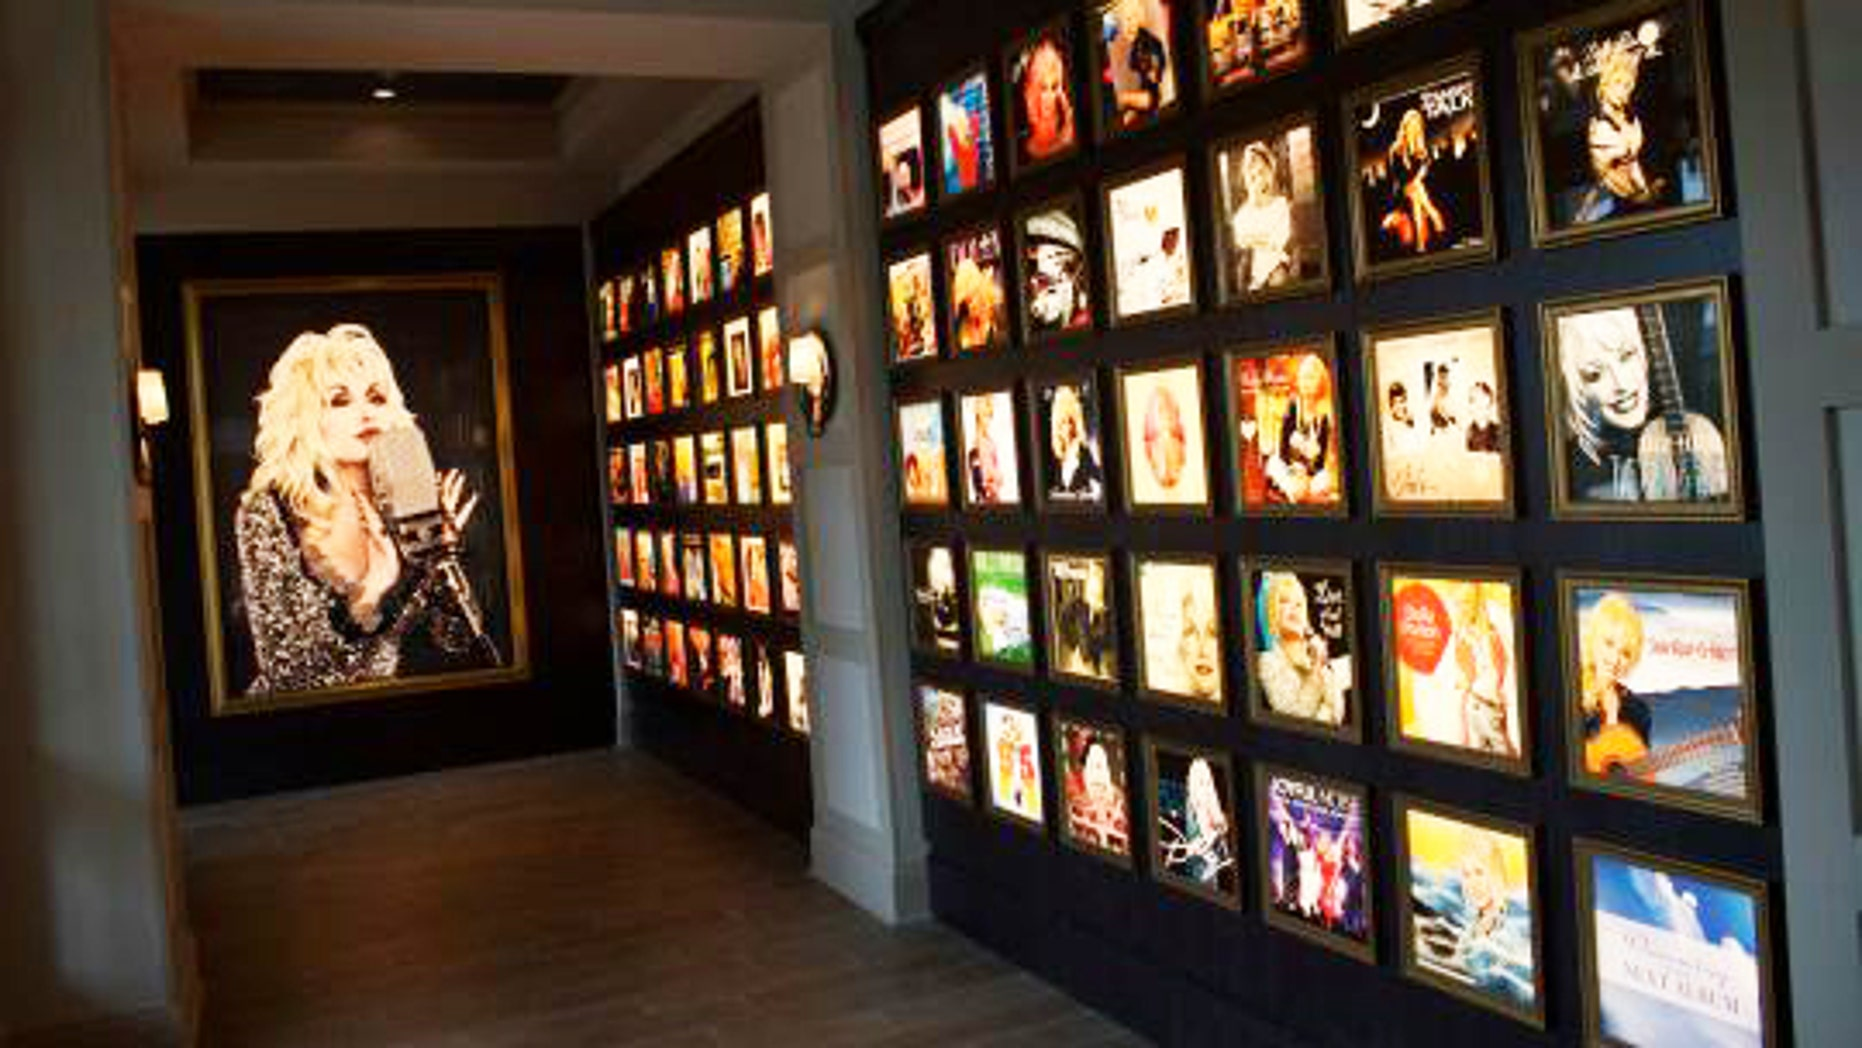 Dolly's discography wall shows the result of her impressive career in music.